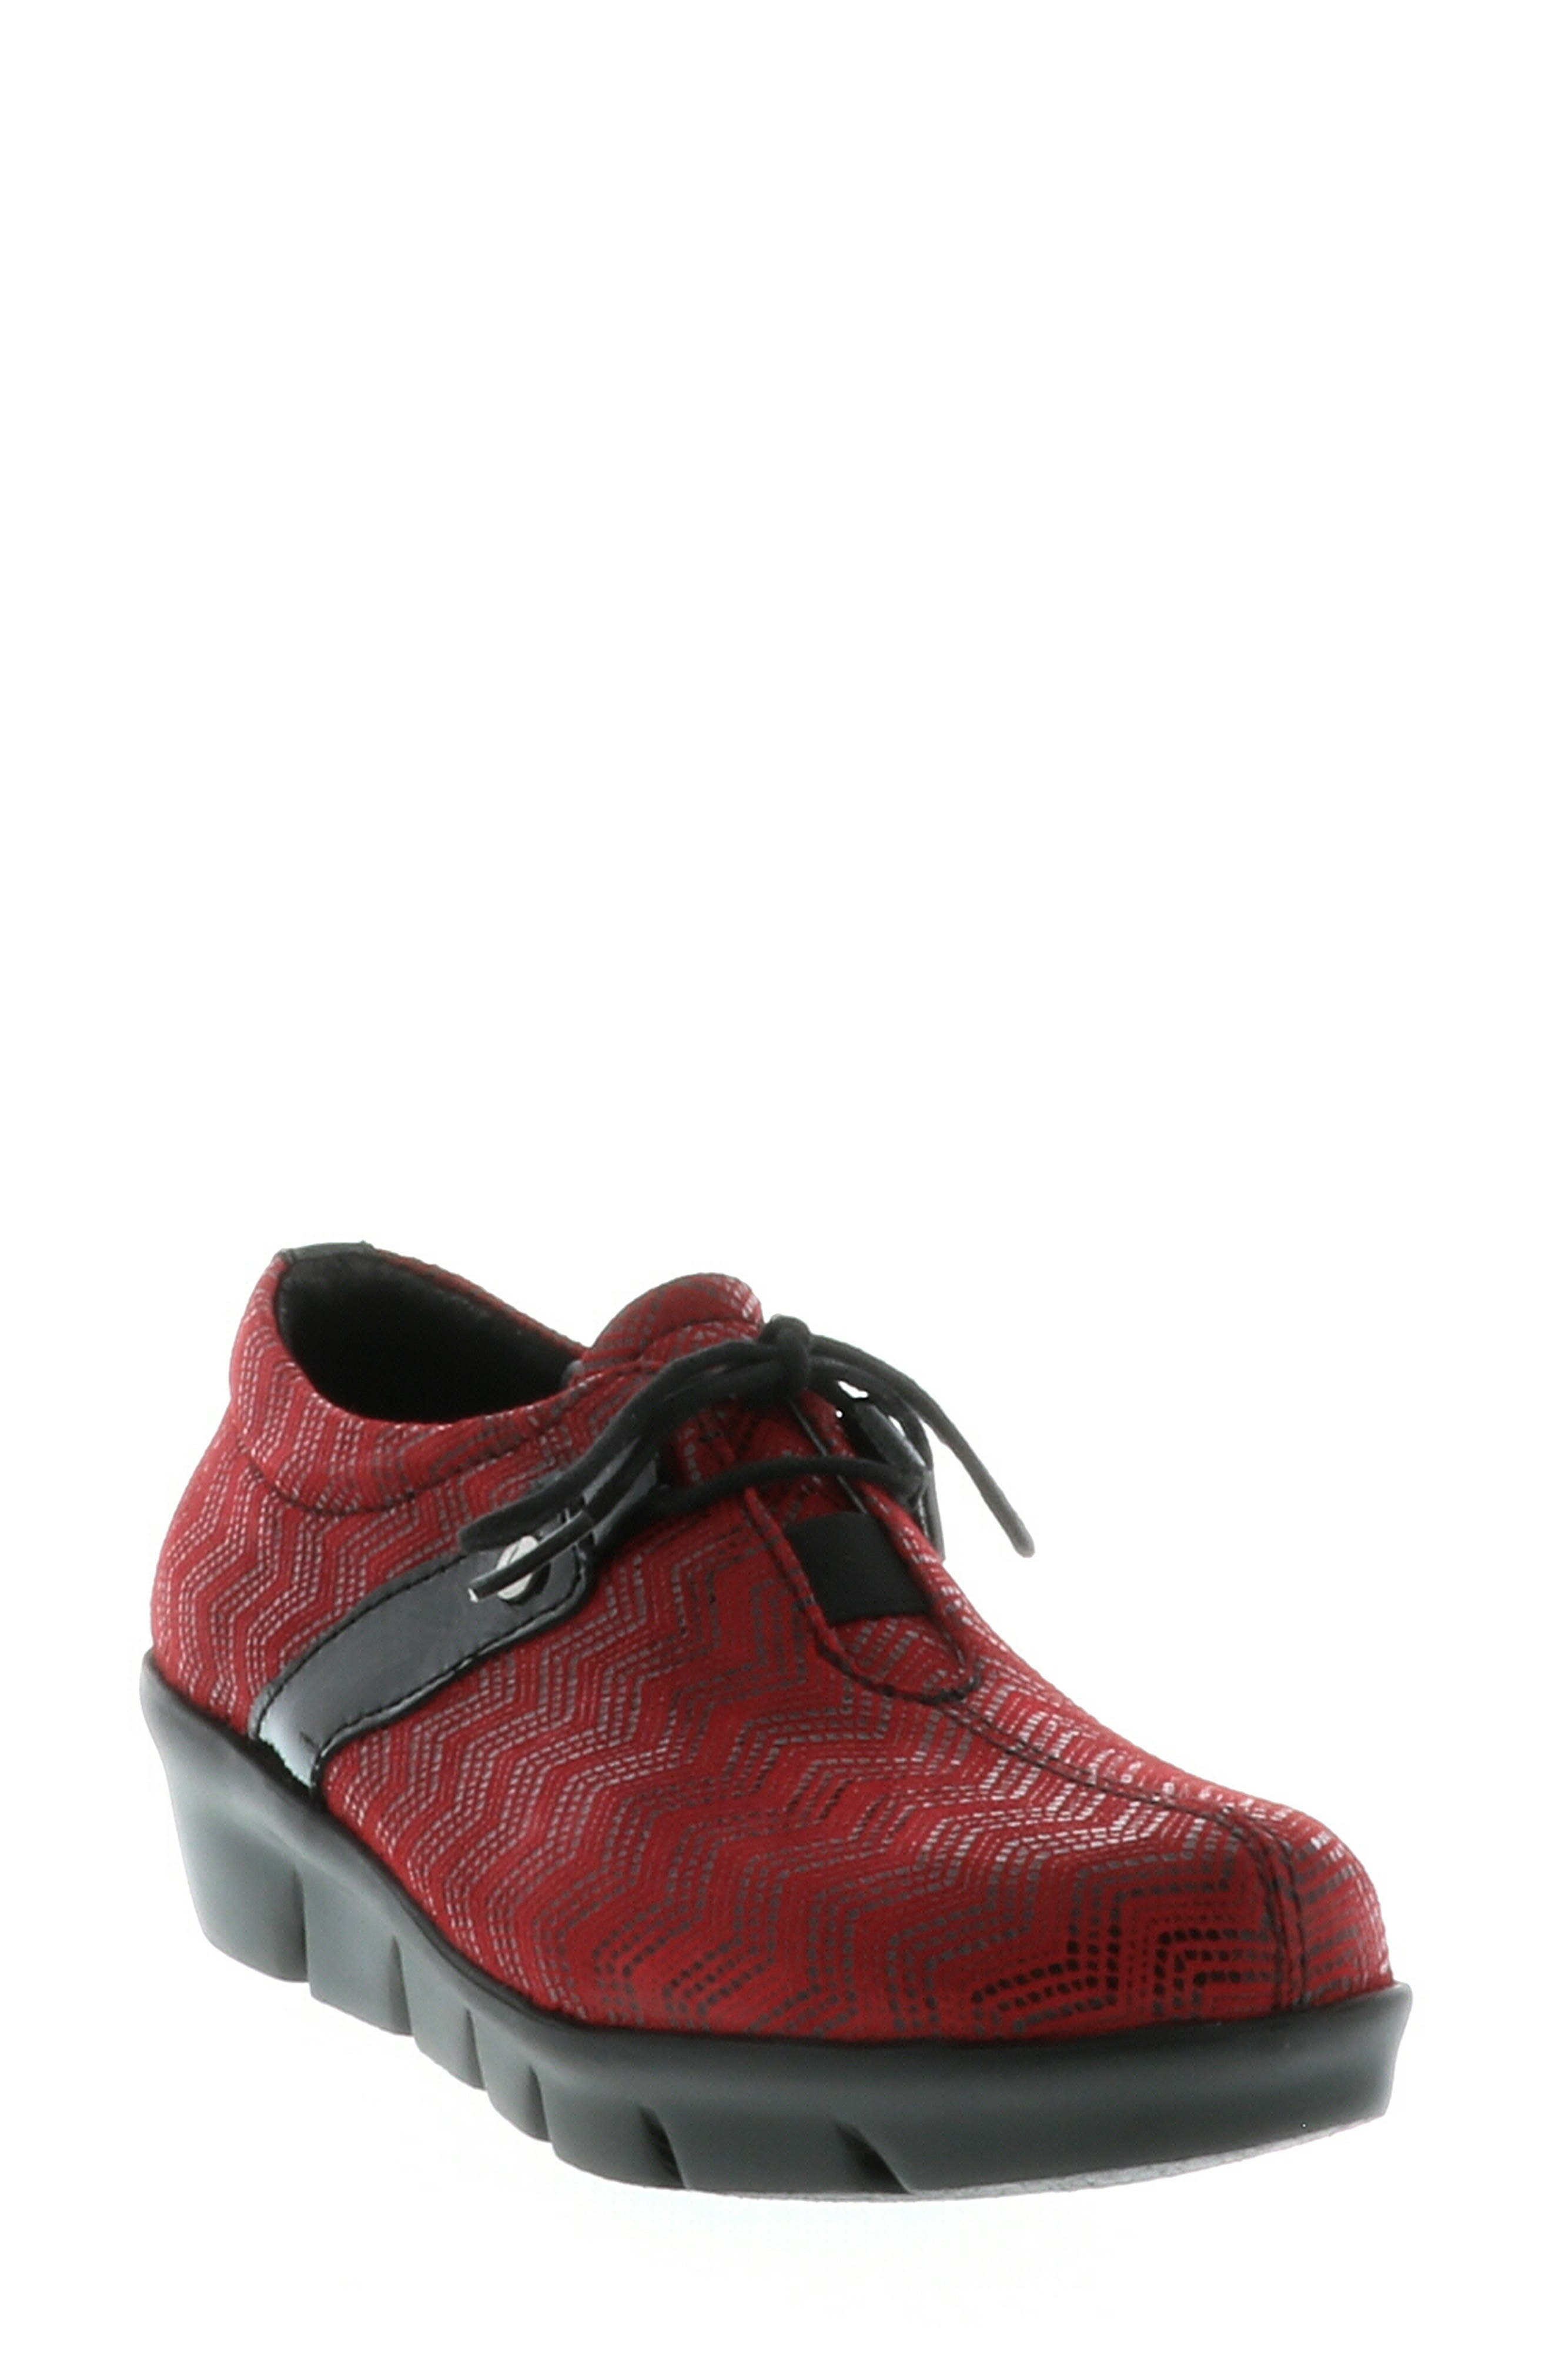 Wolky Muse Oxford-9 - Red